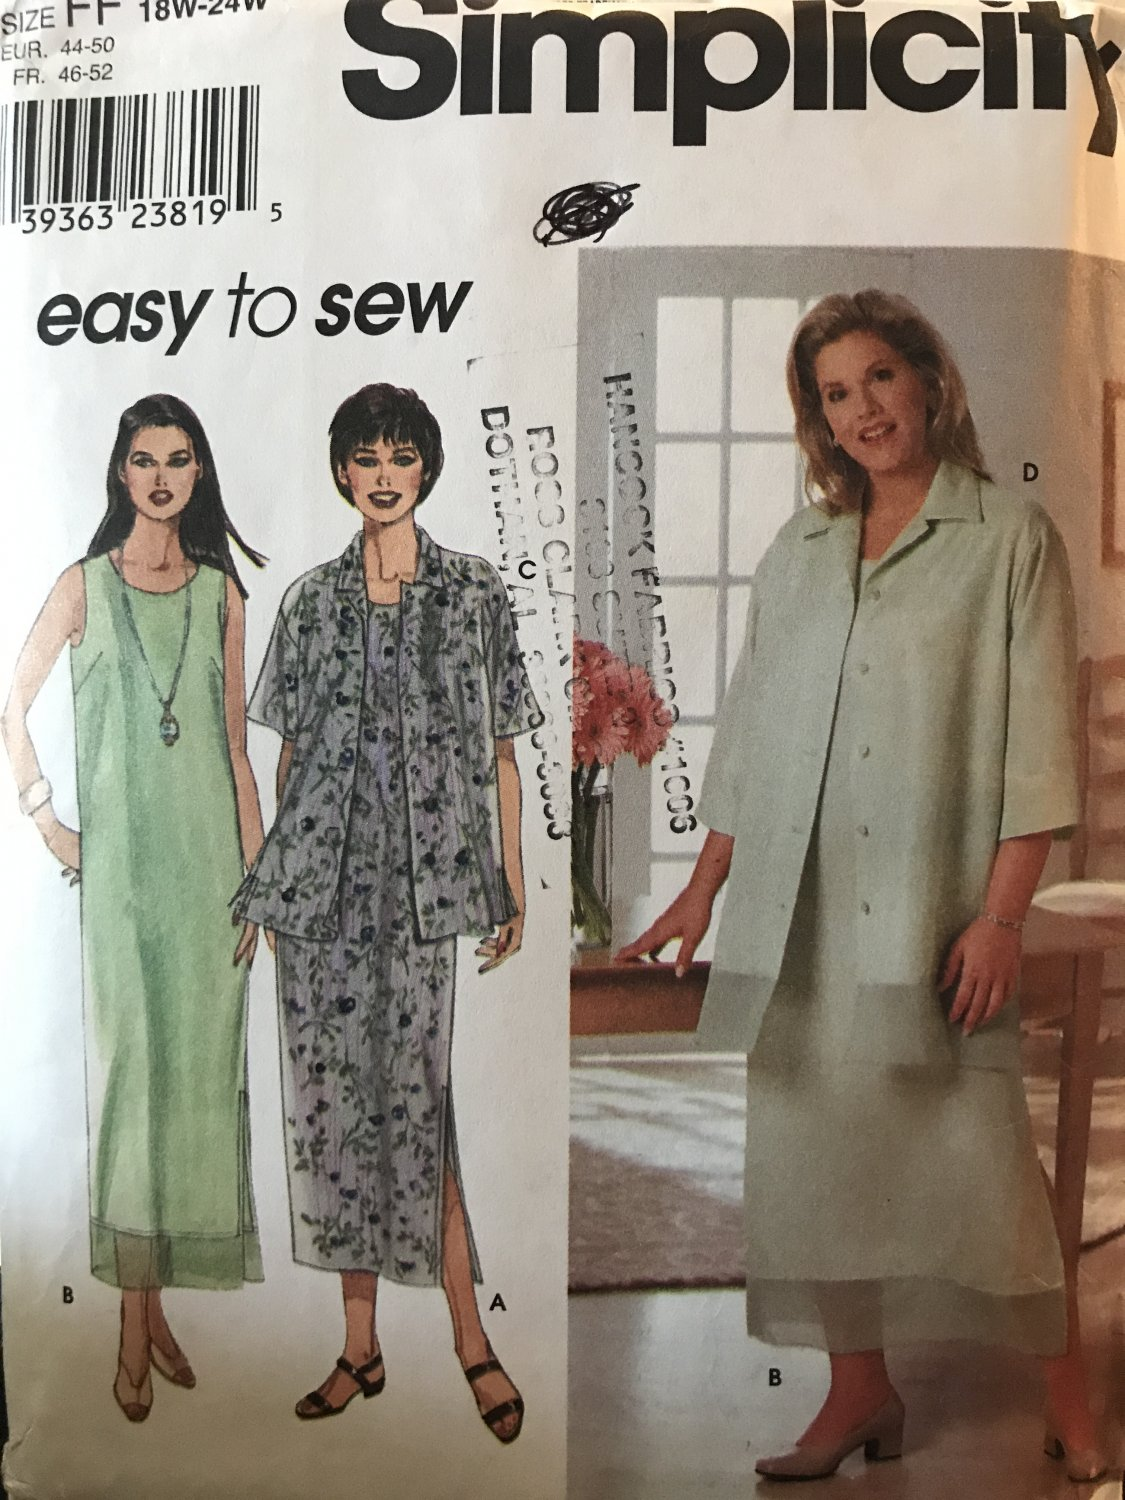 Simplicity 9135: Women's Dress and Jacket Plus Sizes 18W-24W Sewing Pattern